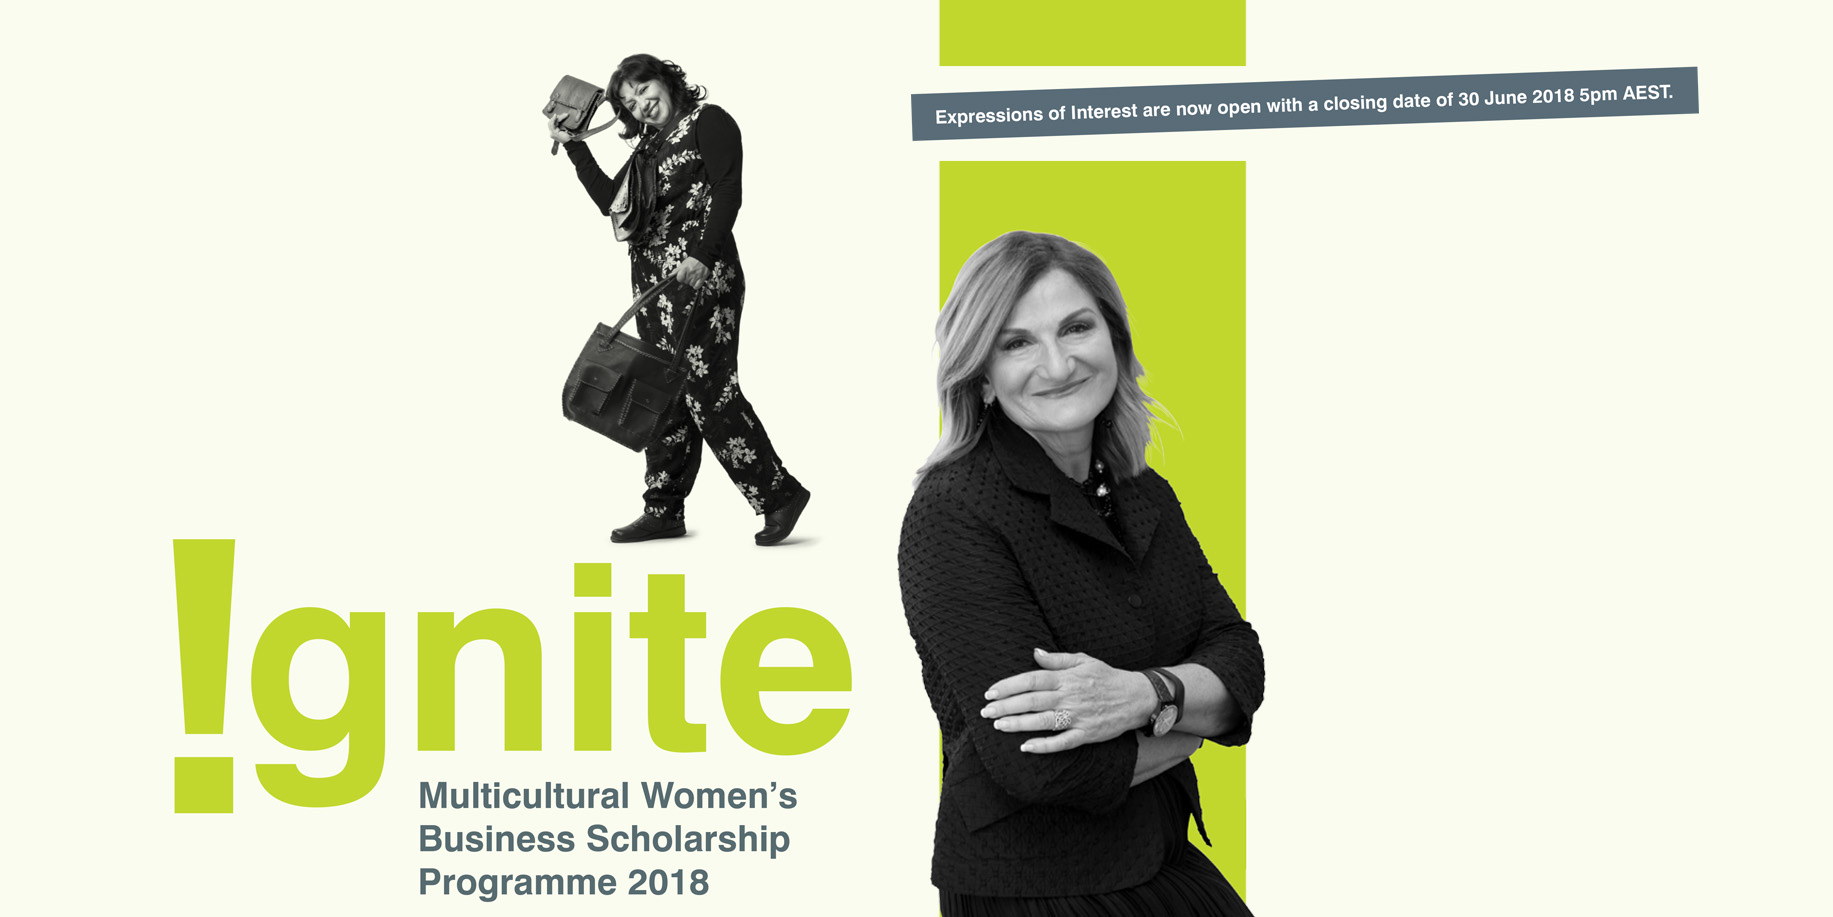 Ignite Multicultural Womens Business Scholarship Programme 2018 collage image of CEO Violet Roumeliotis and a successful female entrepeneur